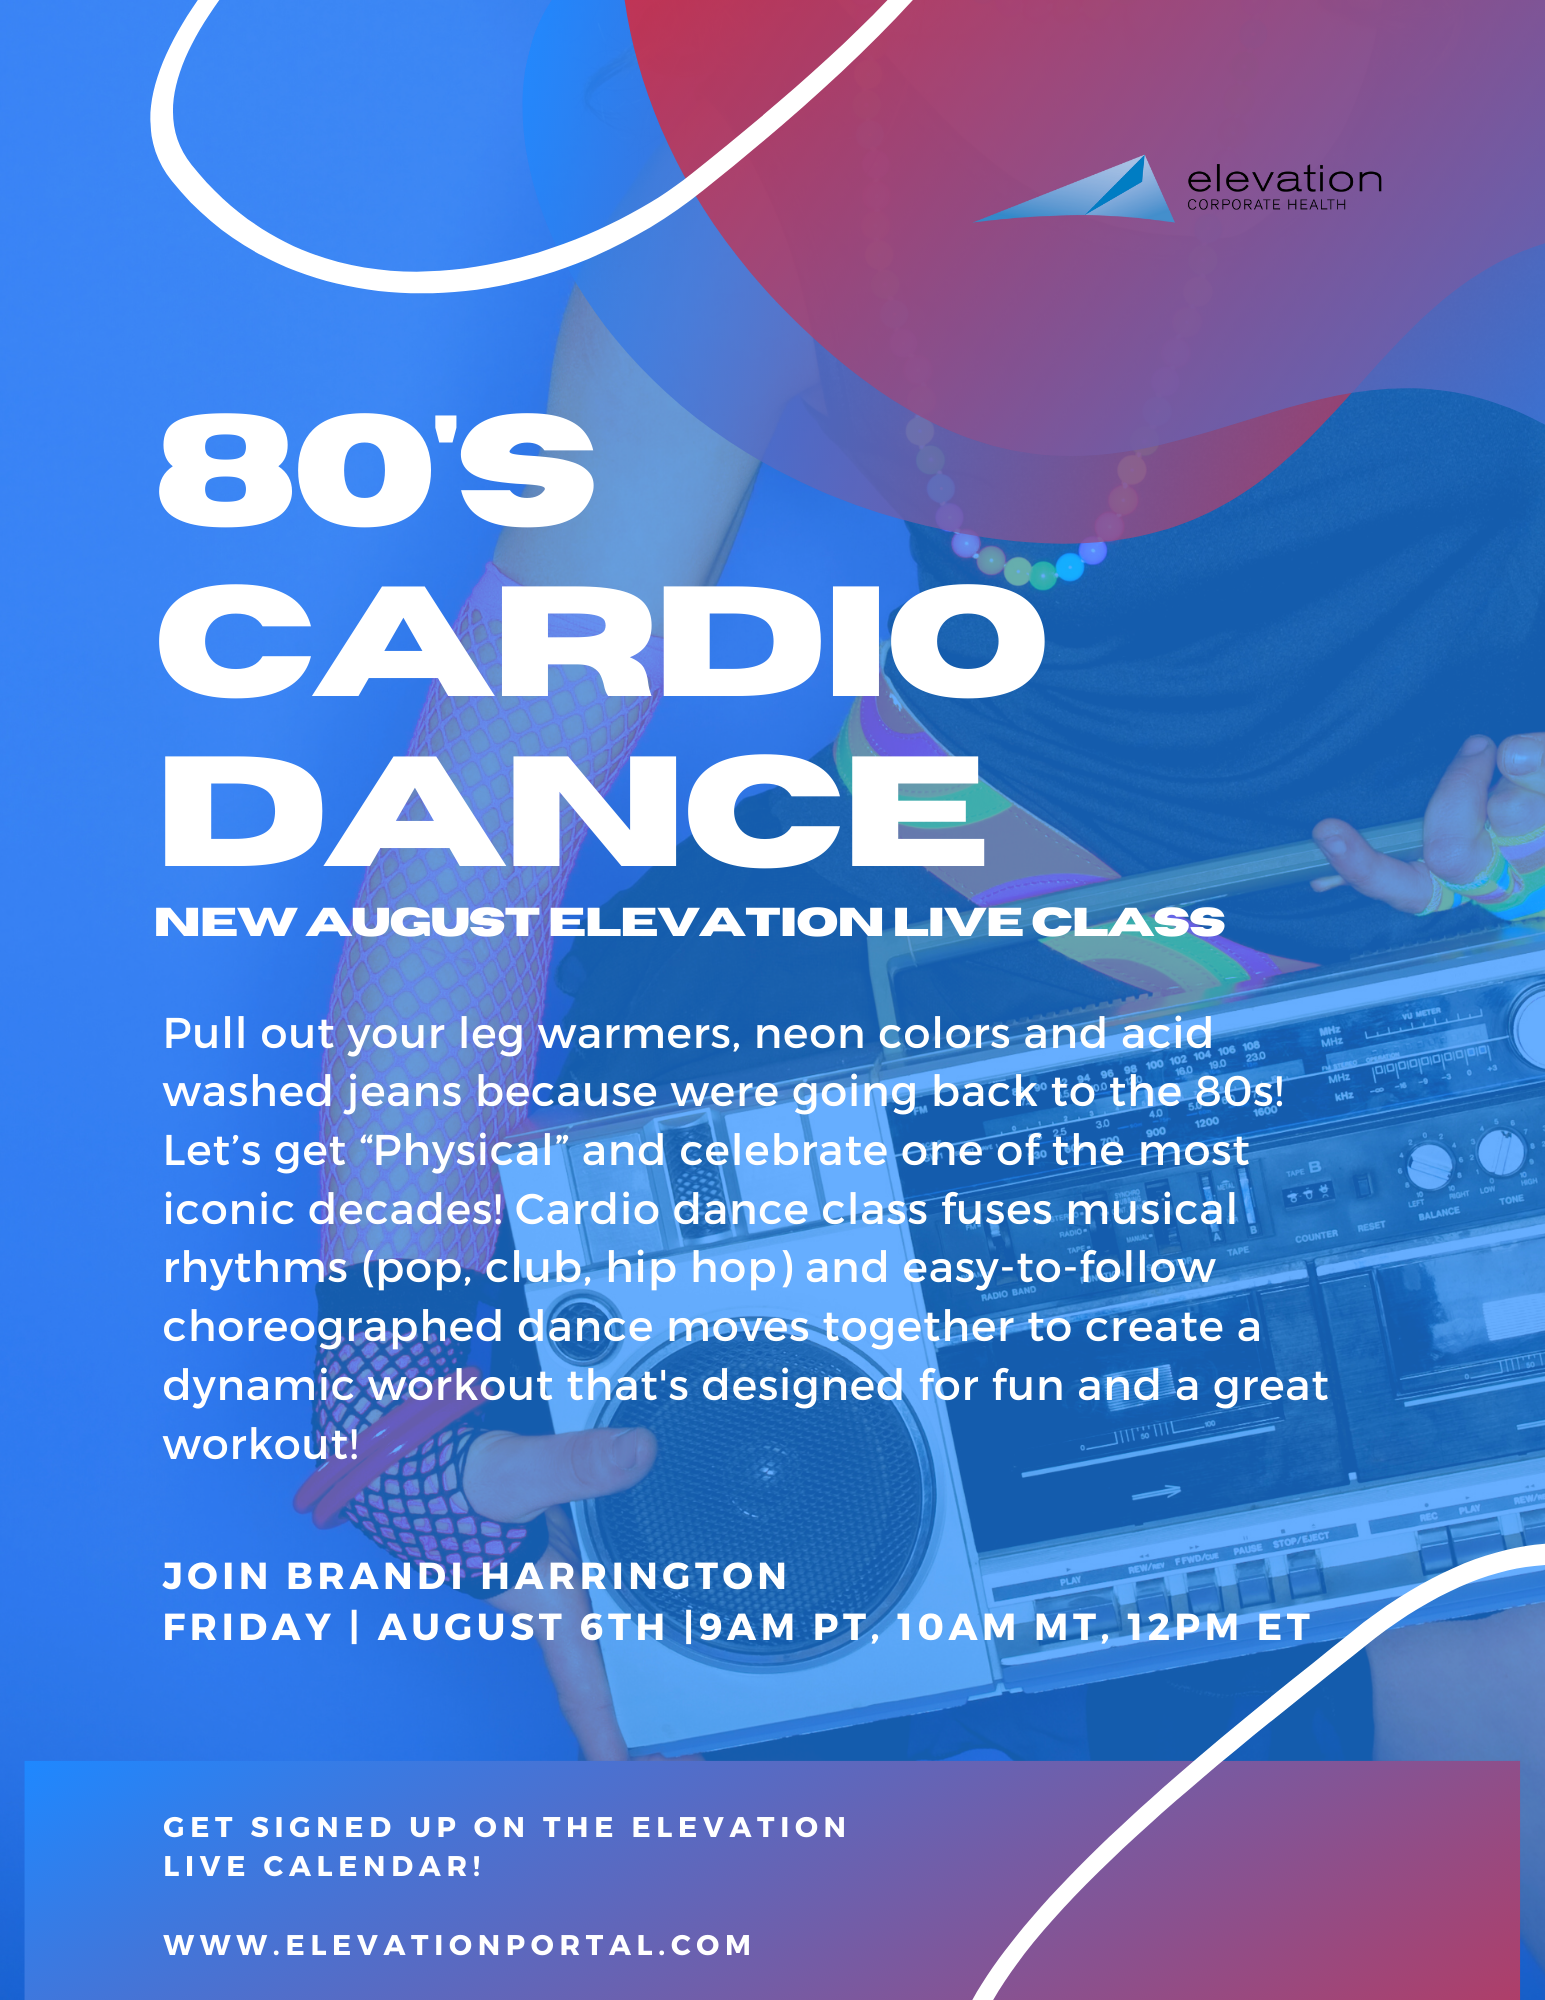 New-Elevation-Live-Class-August